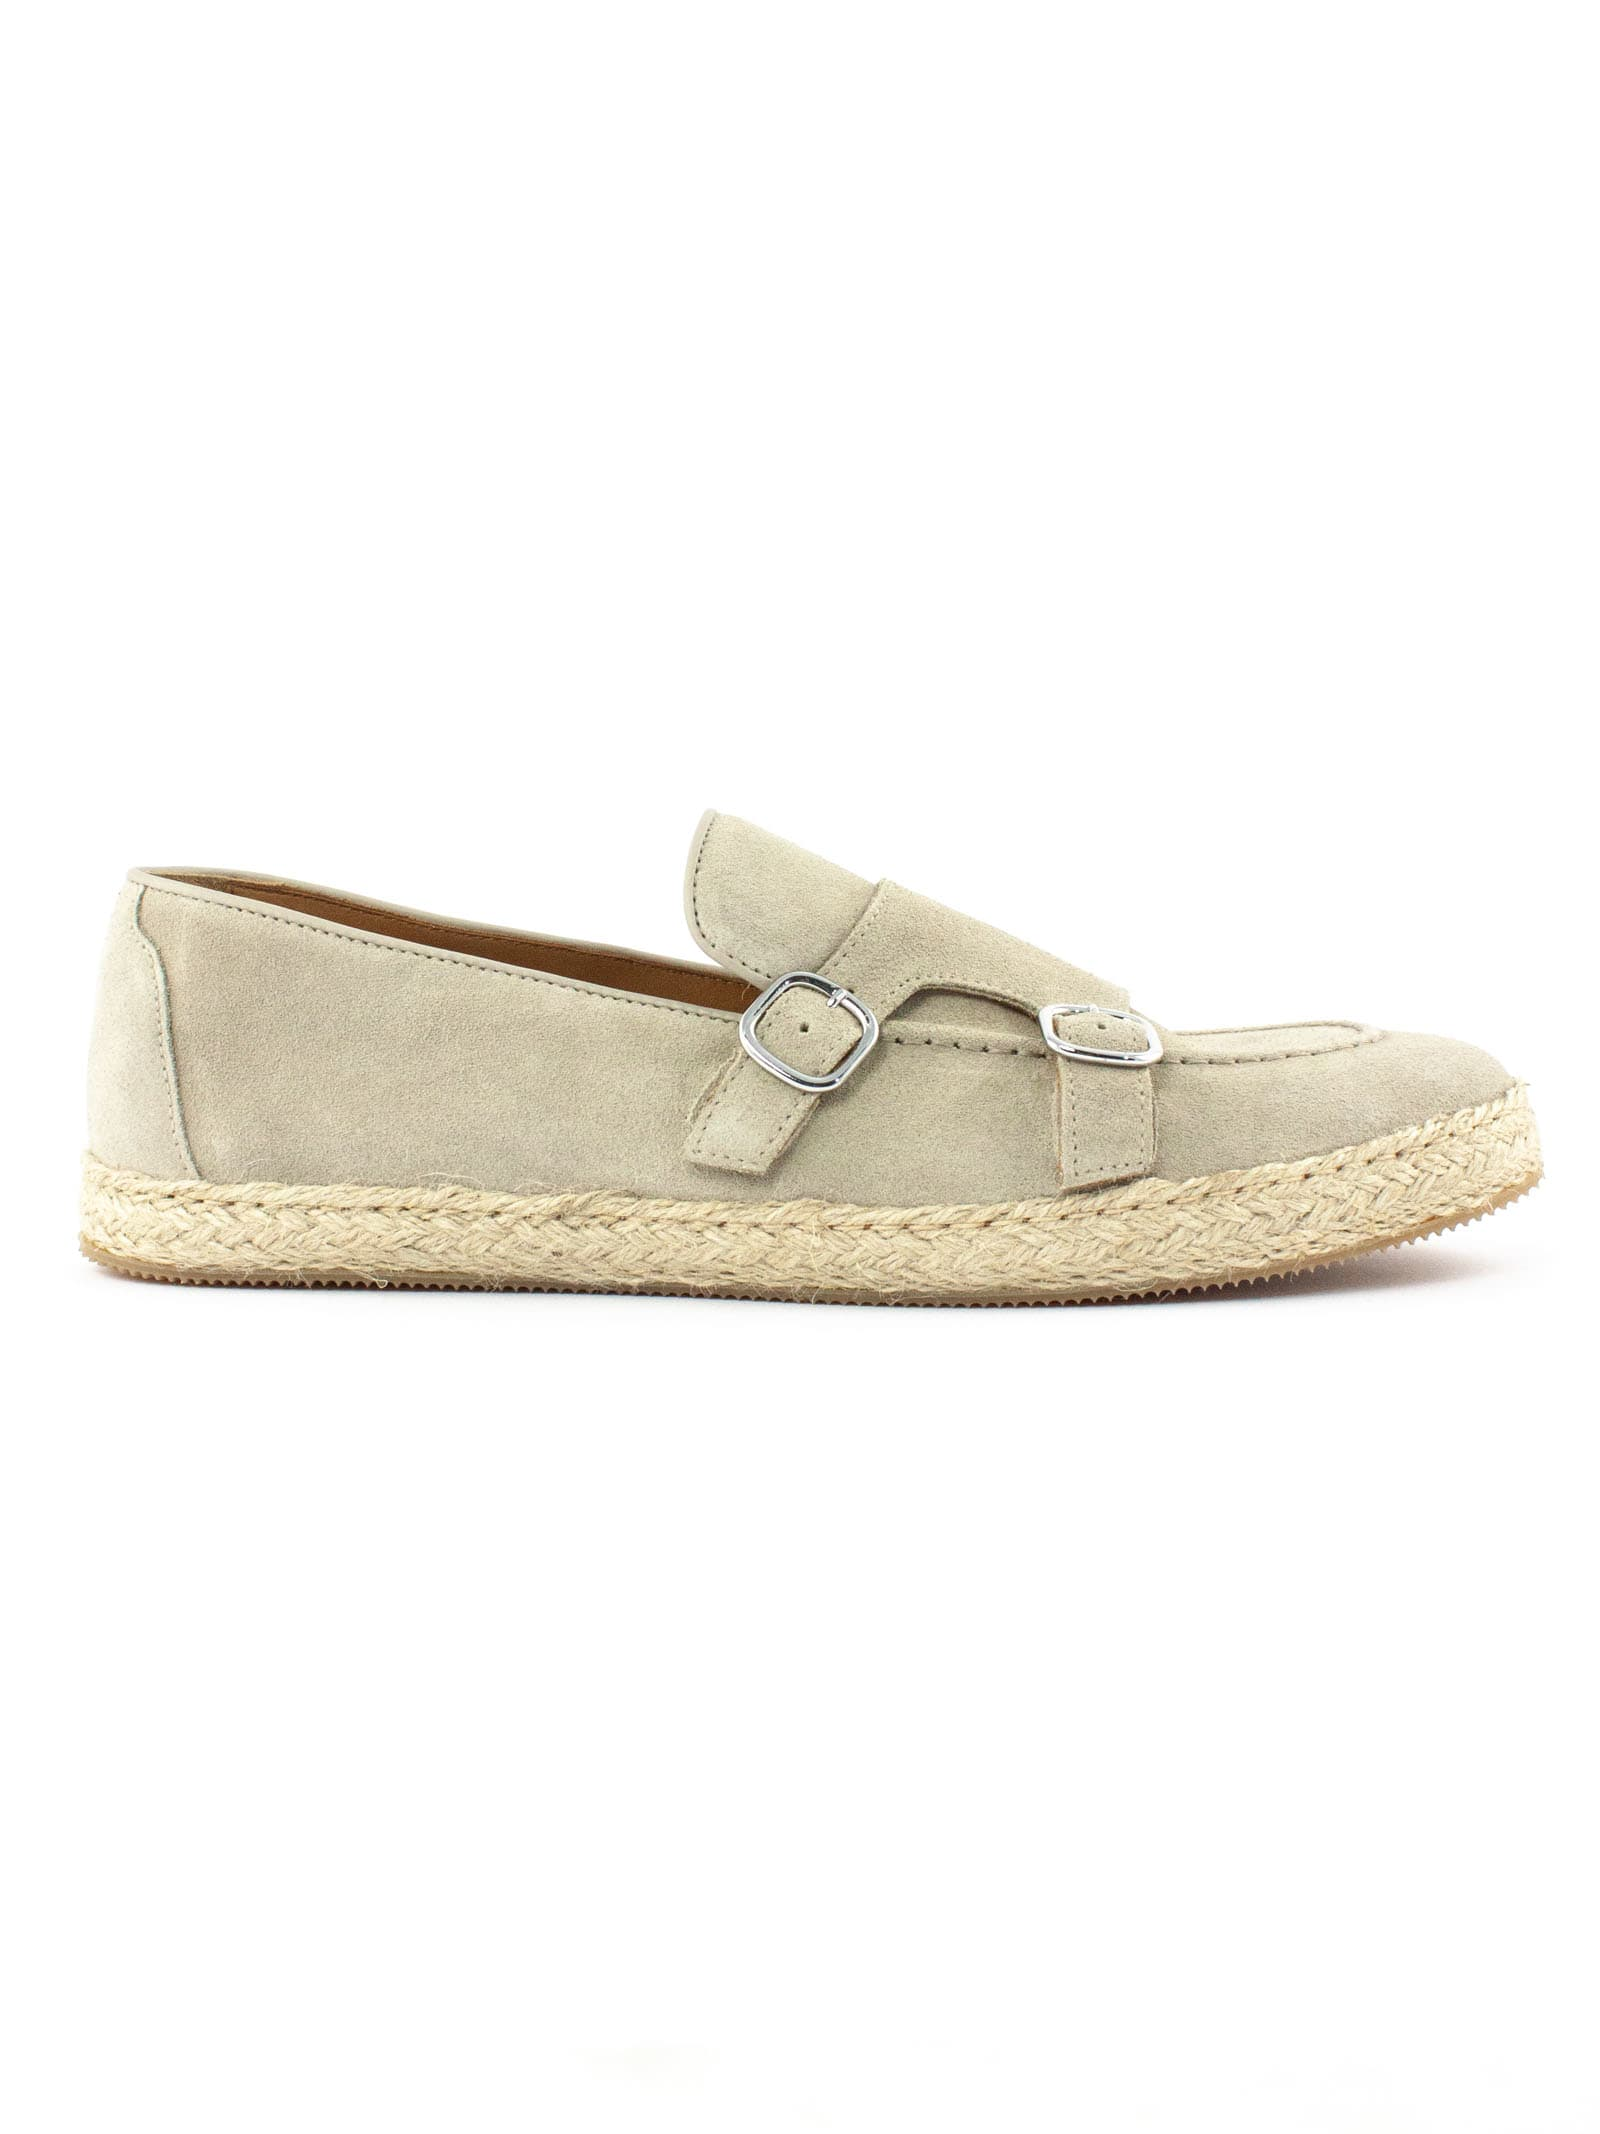 Doucal's BEIGE SUEDE LOAFER